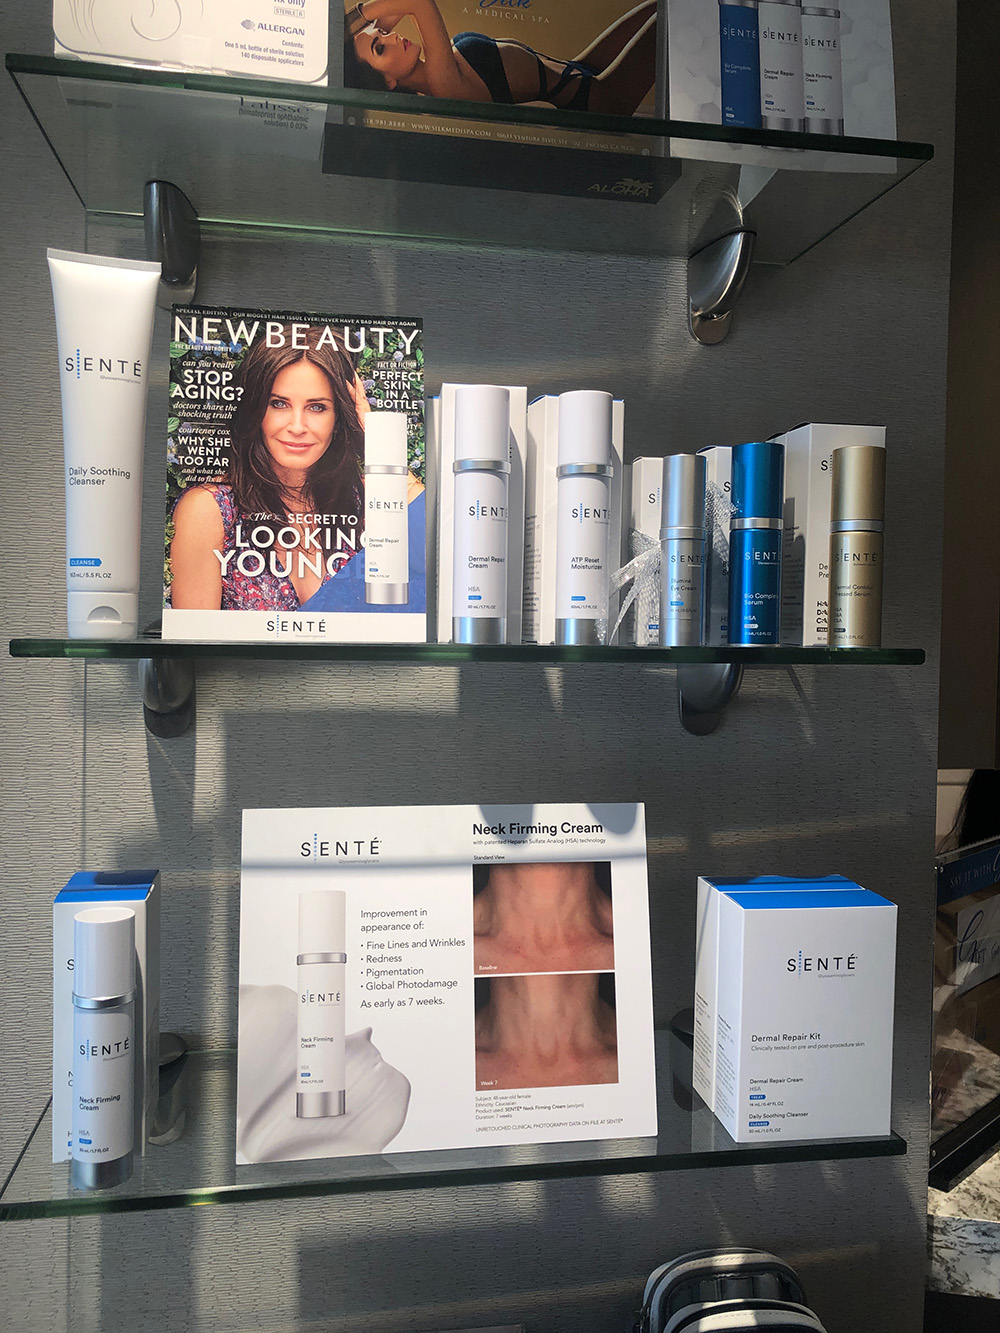 The retail area carries a variety of medical-grade skin care lines, including celebrity favorite Sente.